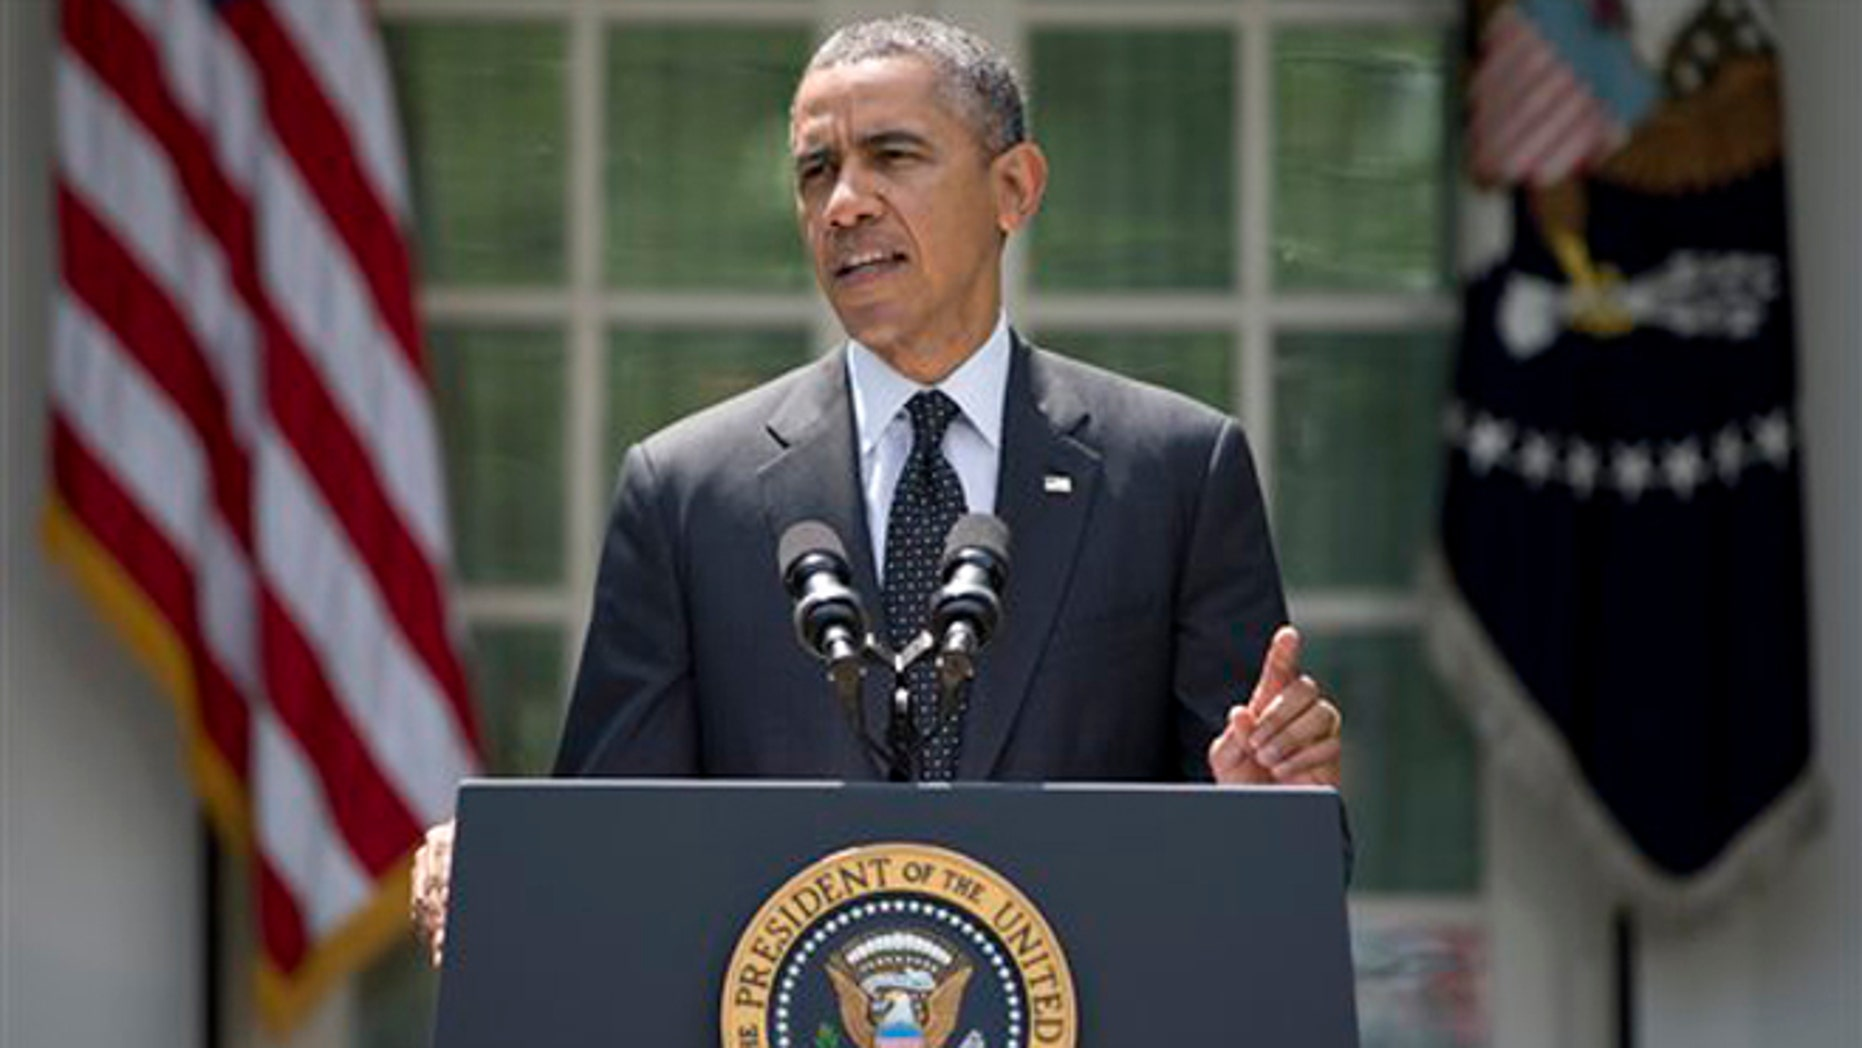 President Barack Obama speaks about the future of US troops in Afghanistan, Tuesday, May 27, 2014.